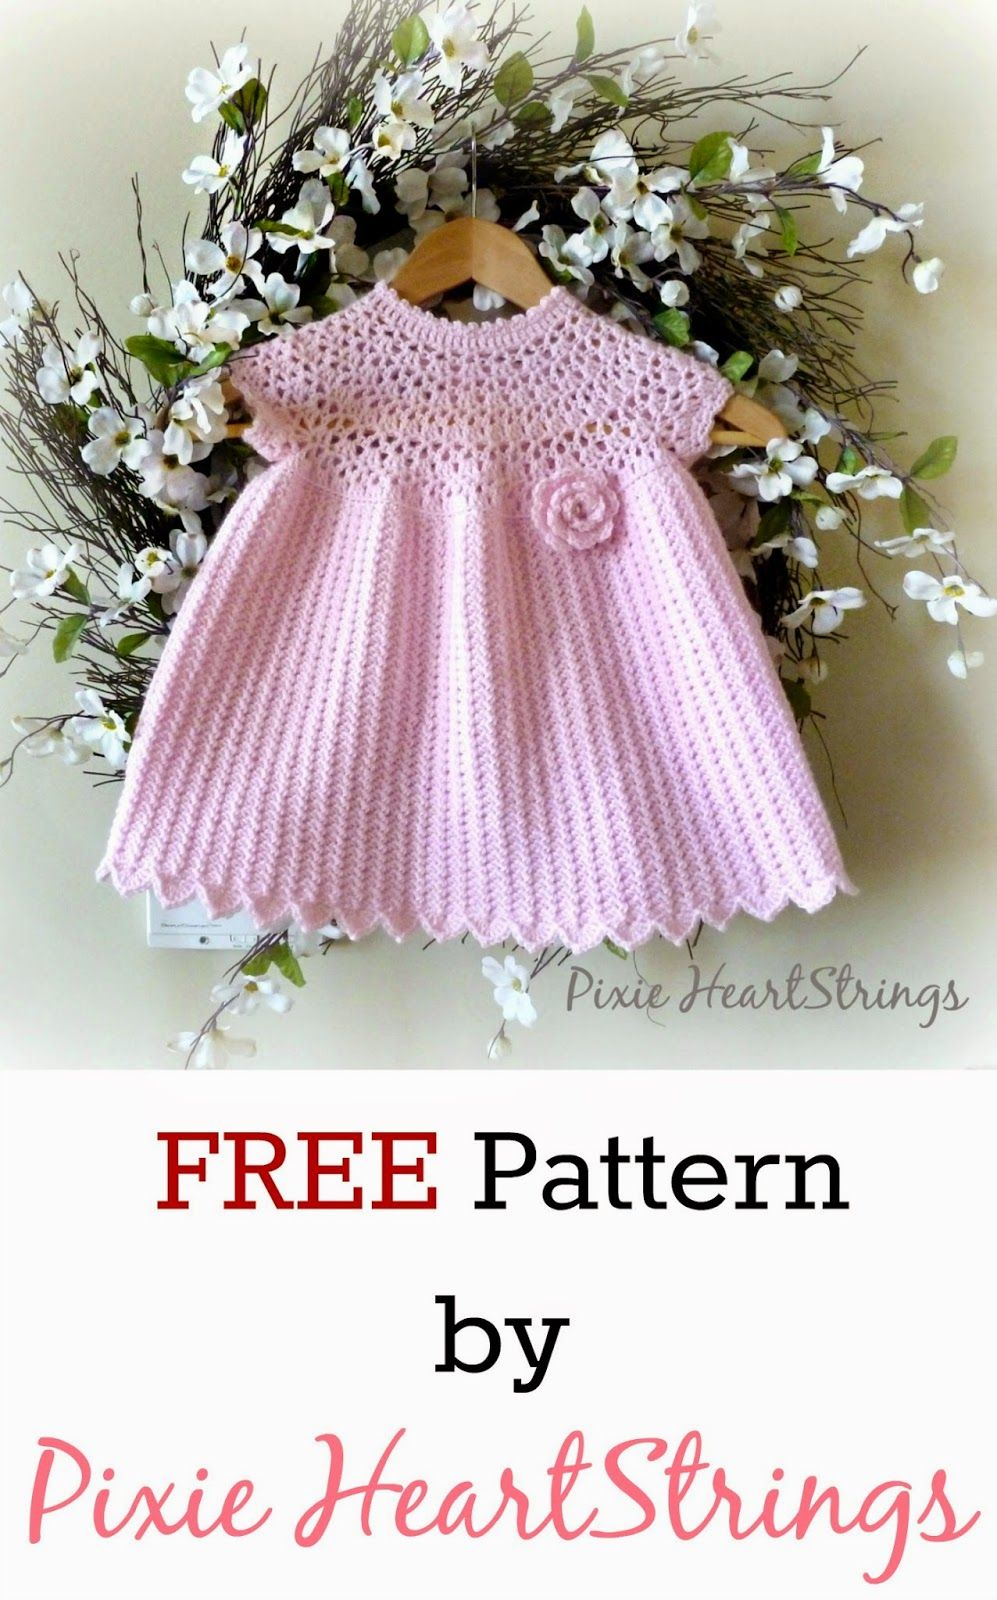 8178ee9d6 Pixie HeartStrings: Pixie's Pretty Pink Dress Pattern ~ FREE Pattern ...